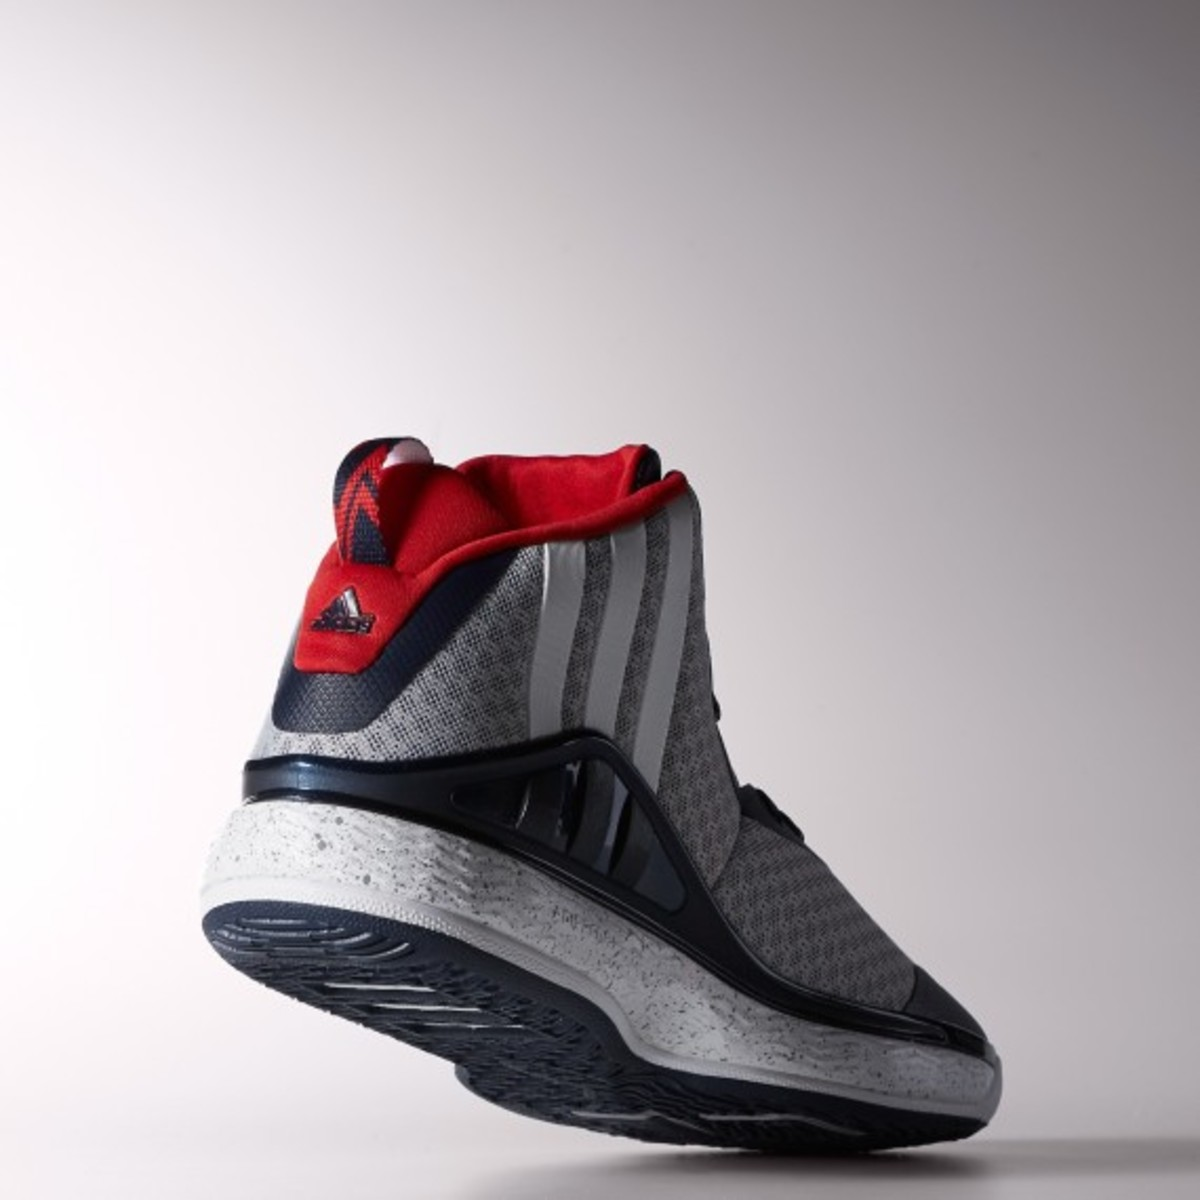 adidas-j-wall-1-signature-basketball-shoe-17